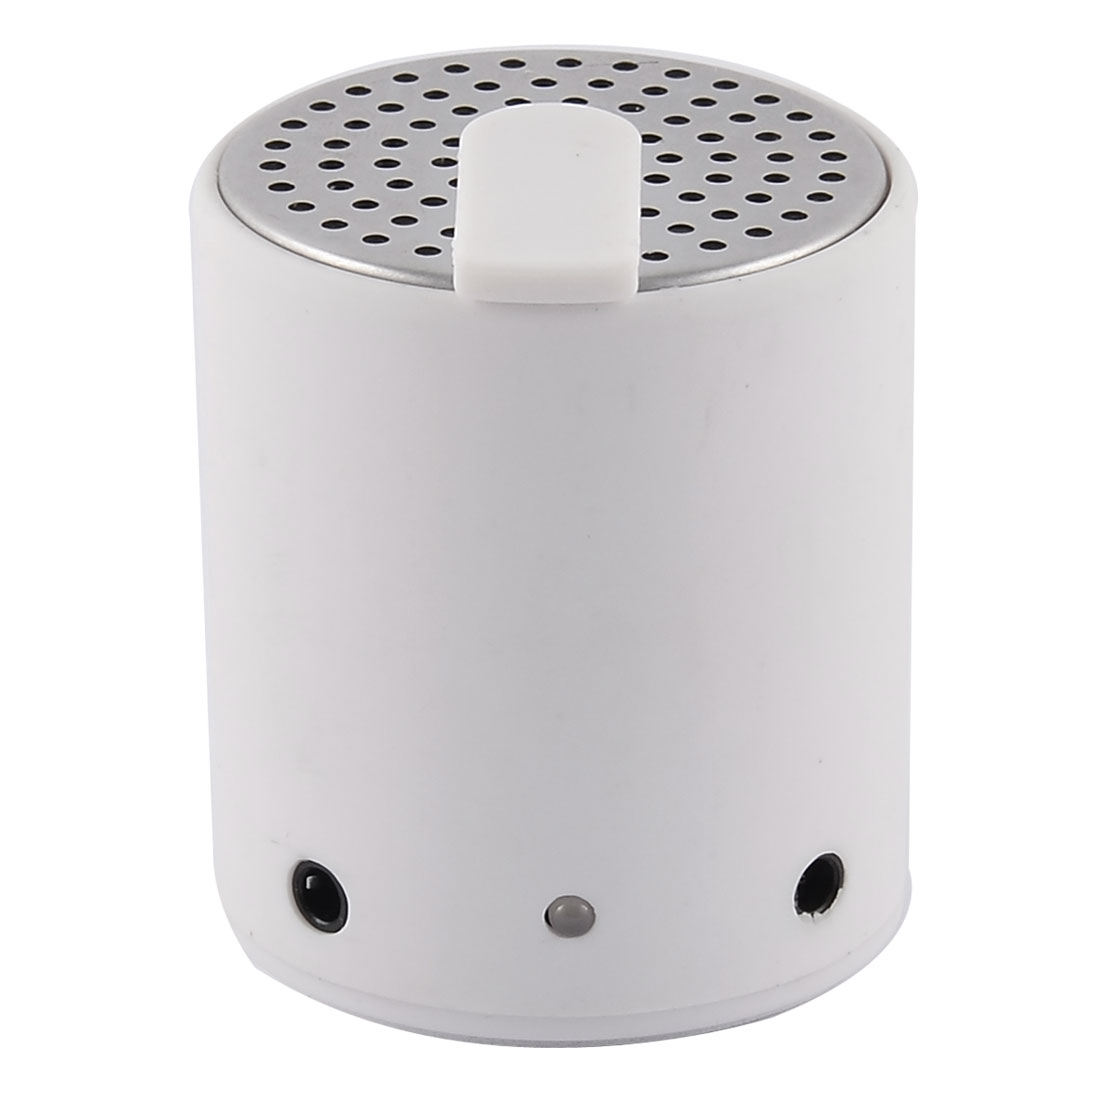 F001 Mini Wireless bluetooth Rechargeable Stereo Speaker White For Phone Desktops PC